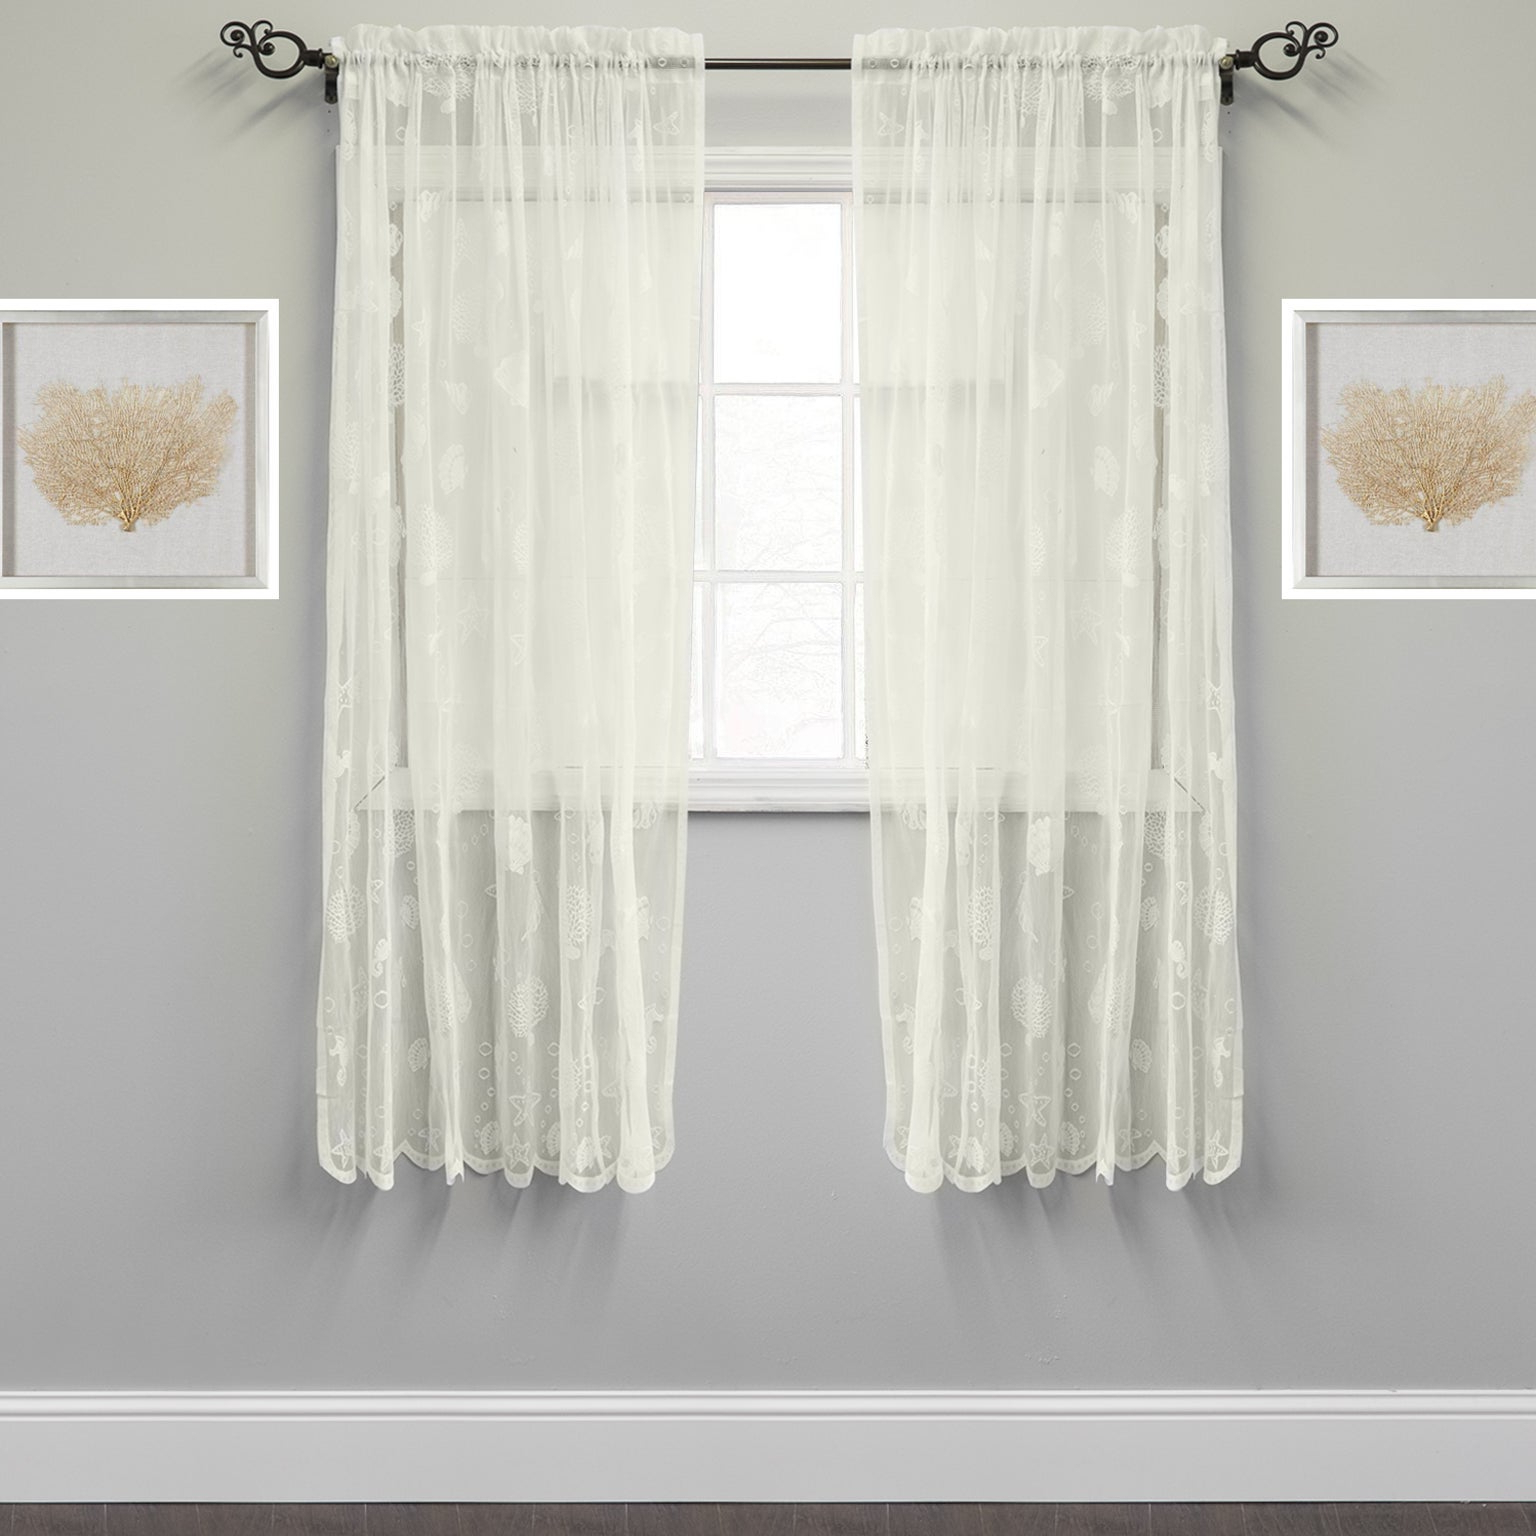 Most Recently Released Marine Life Motif Knitted Lace Window Curtain Panel With Regard To Marine Life Motif Knitted Lace Window Curtain Pieces (Gallery 5 of 20)